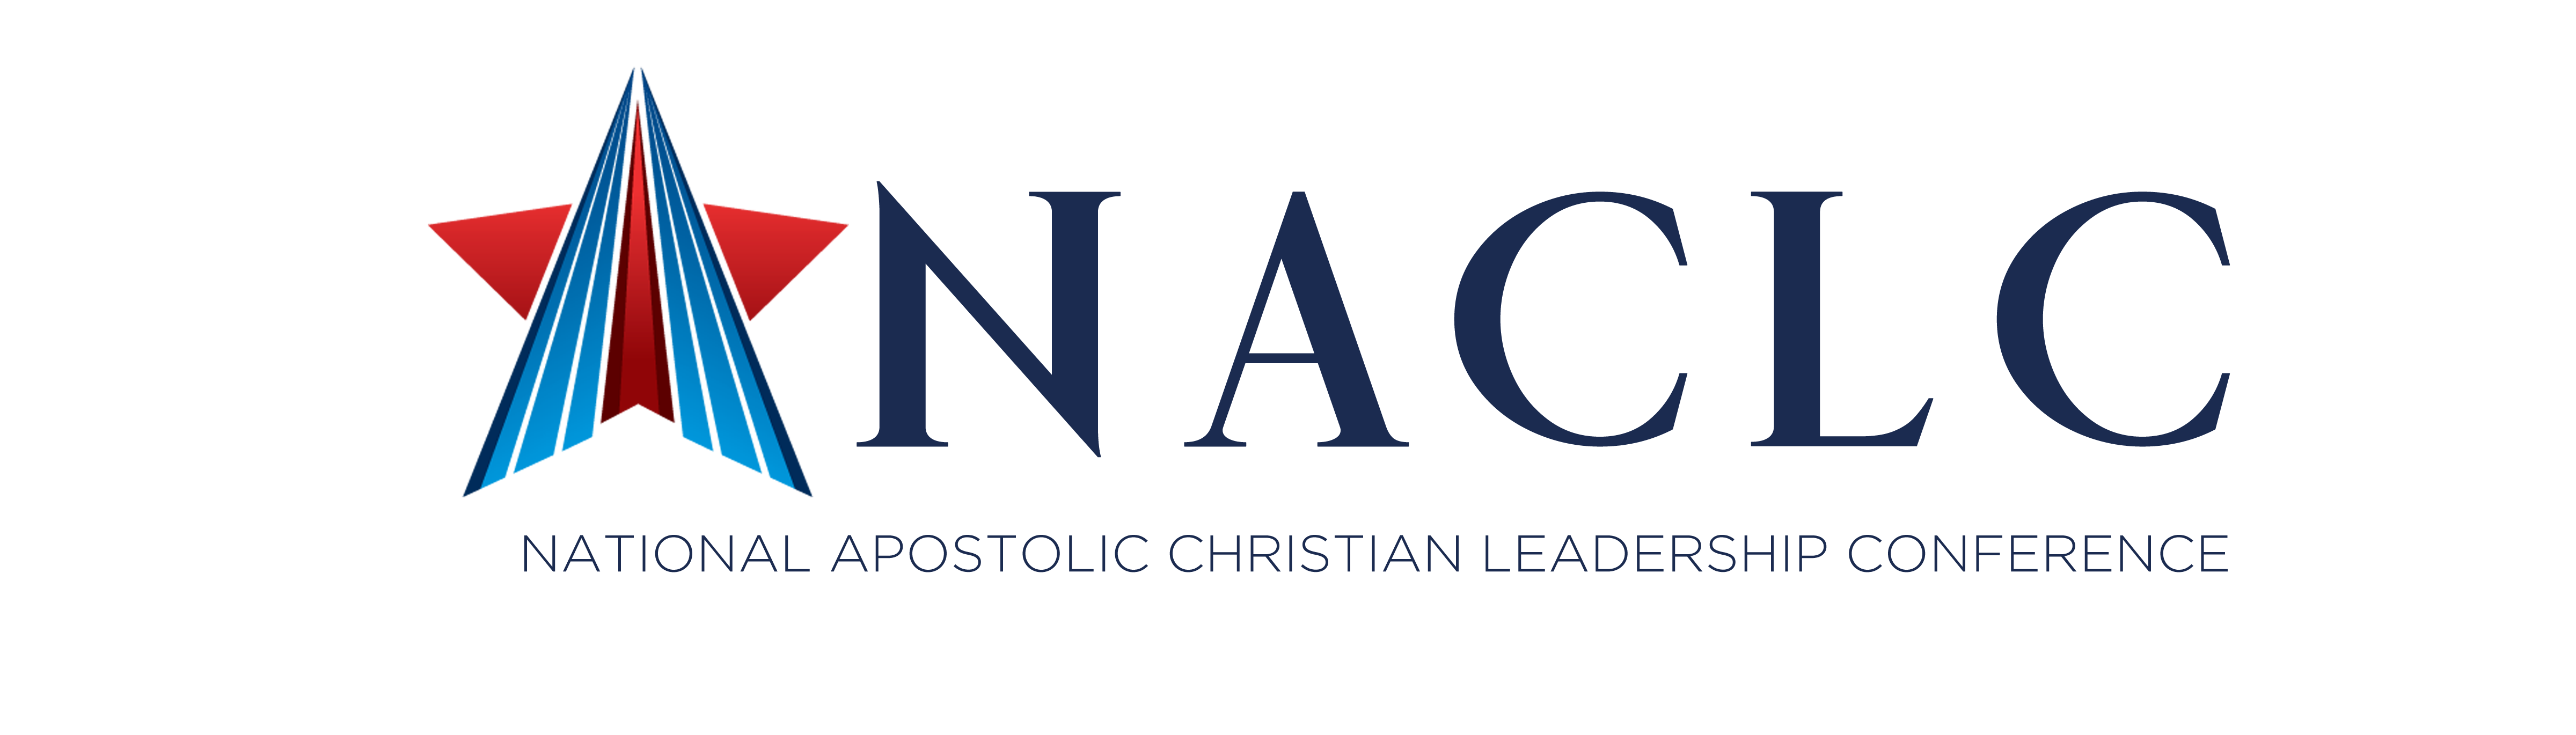 NACLC Organization Monthly Membership ($10-15M)